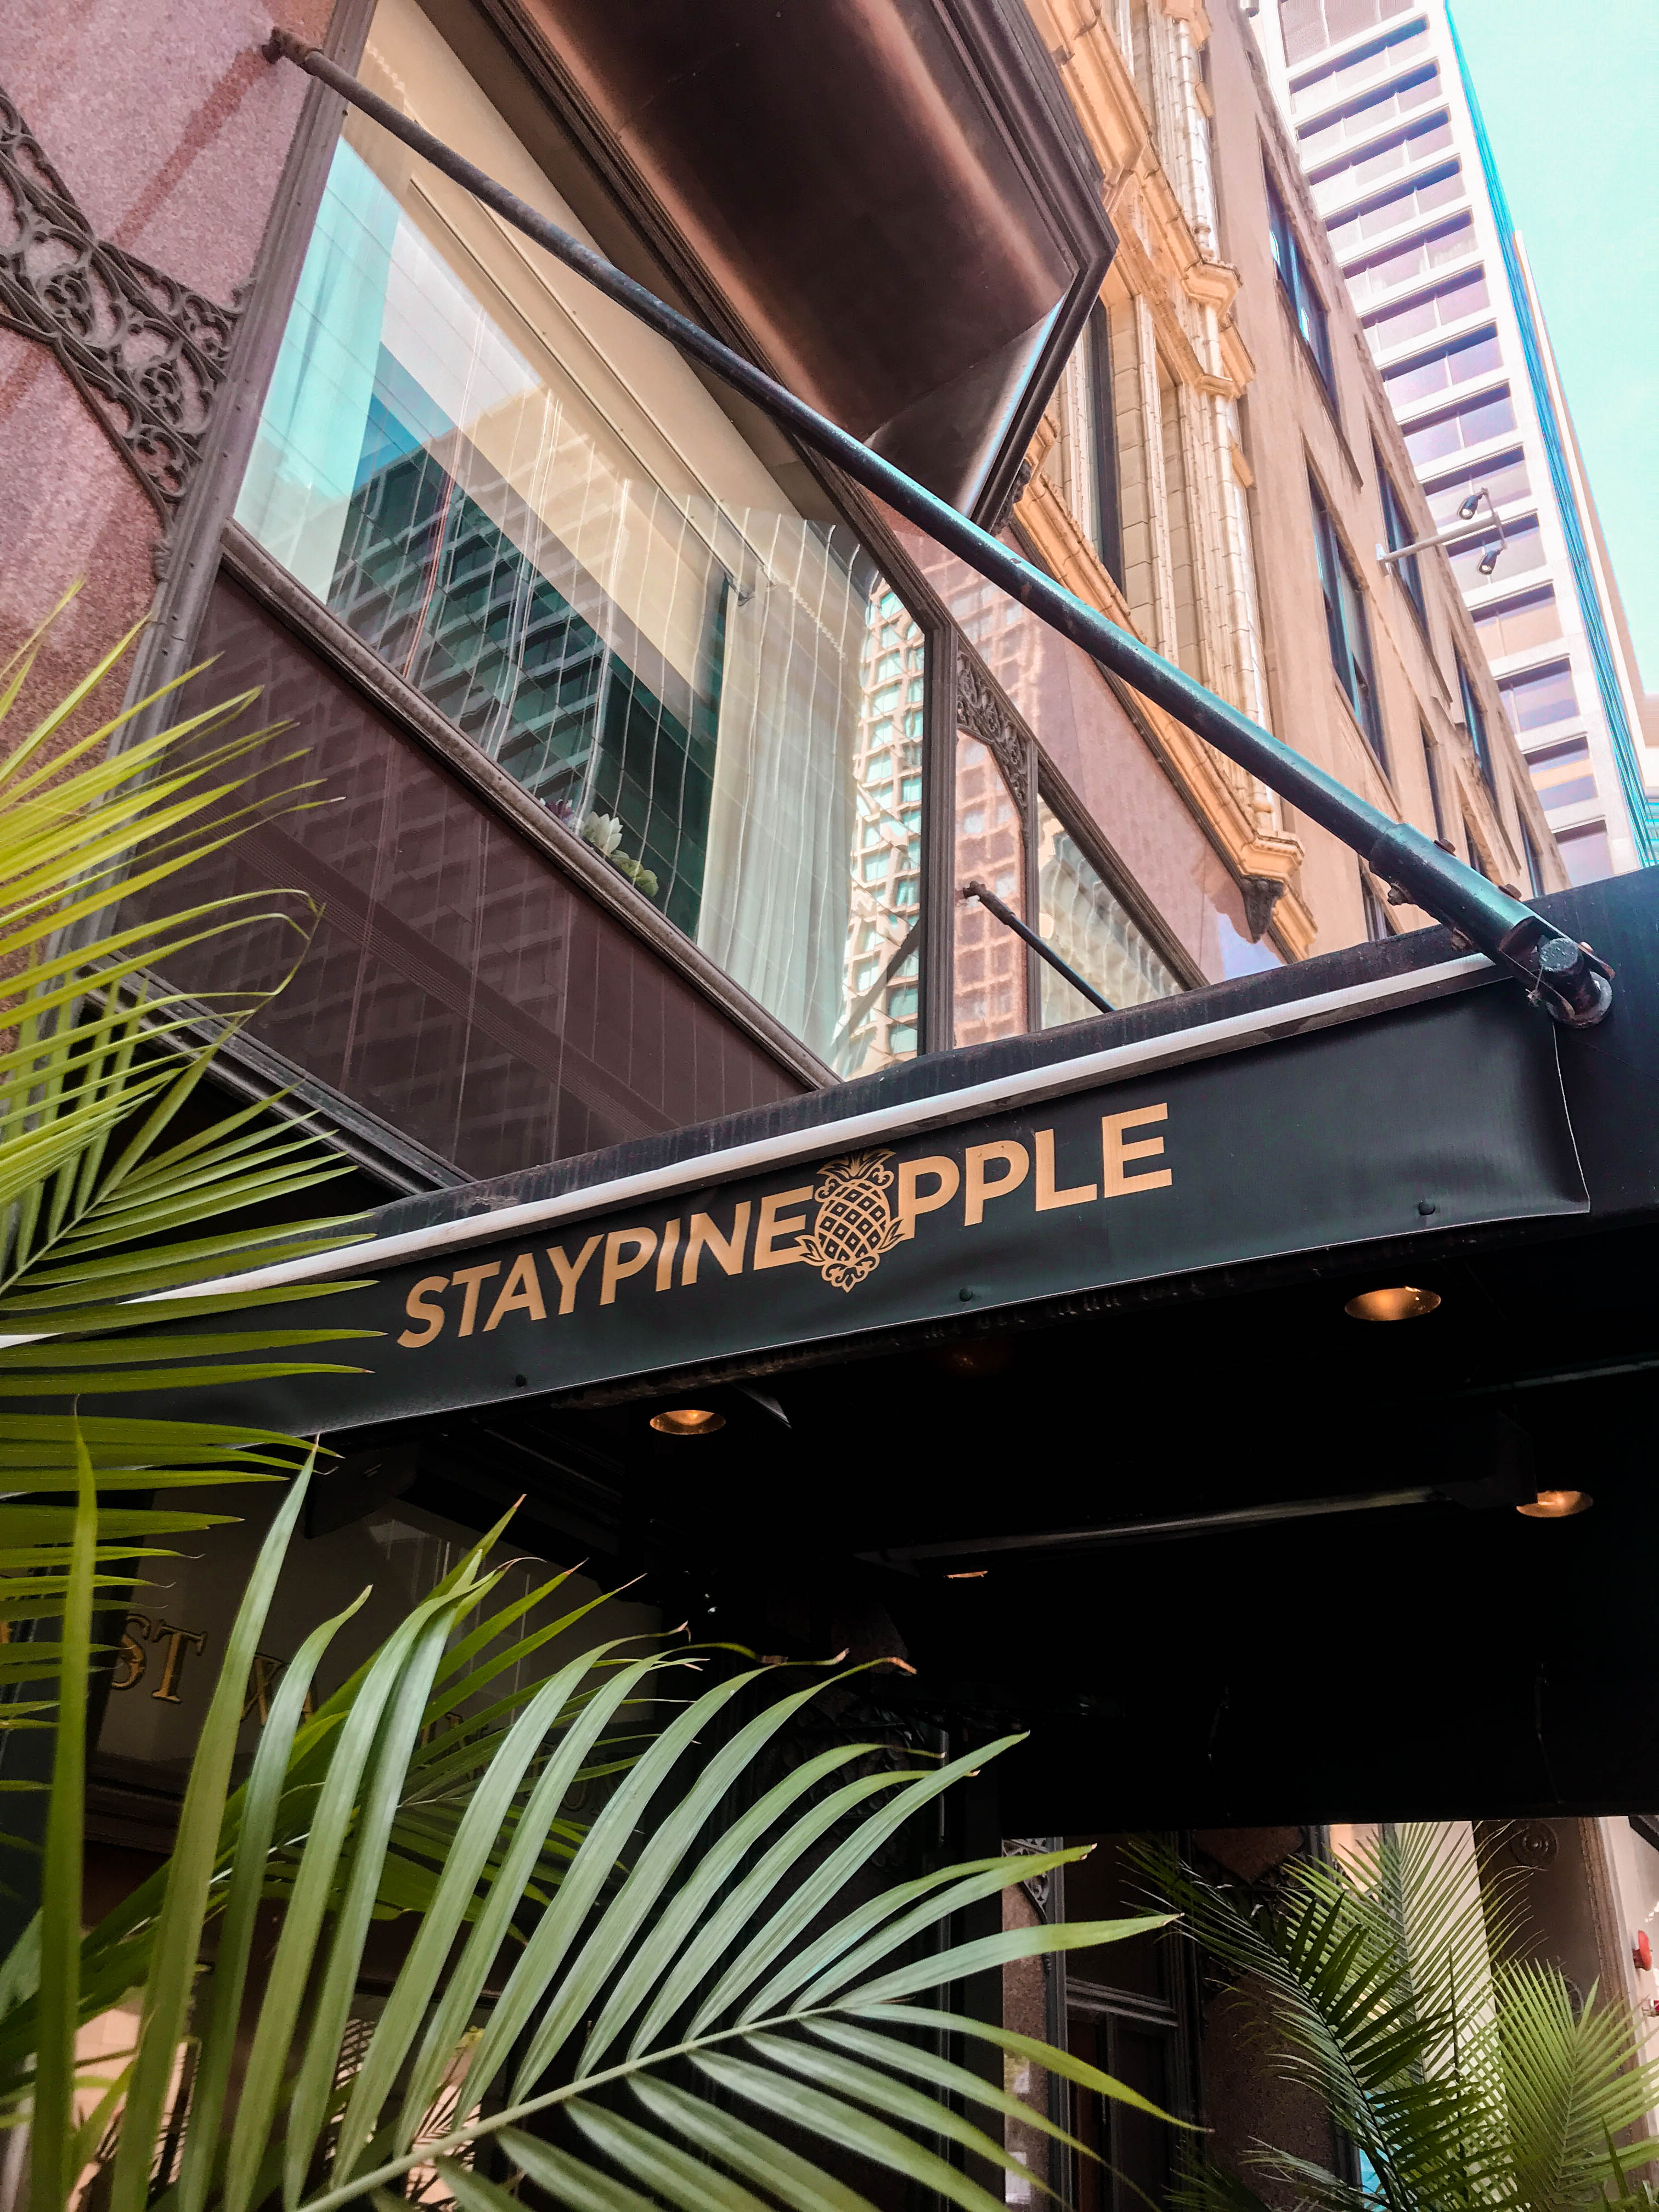 Staypineapple chicago an iconic hotel the loop exterior awning street view washington st